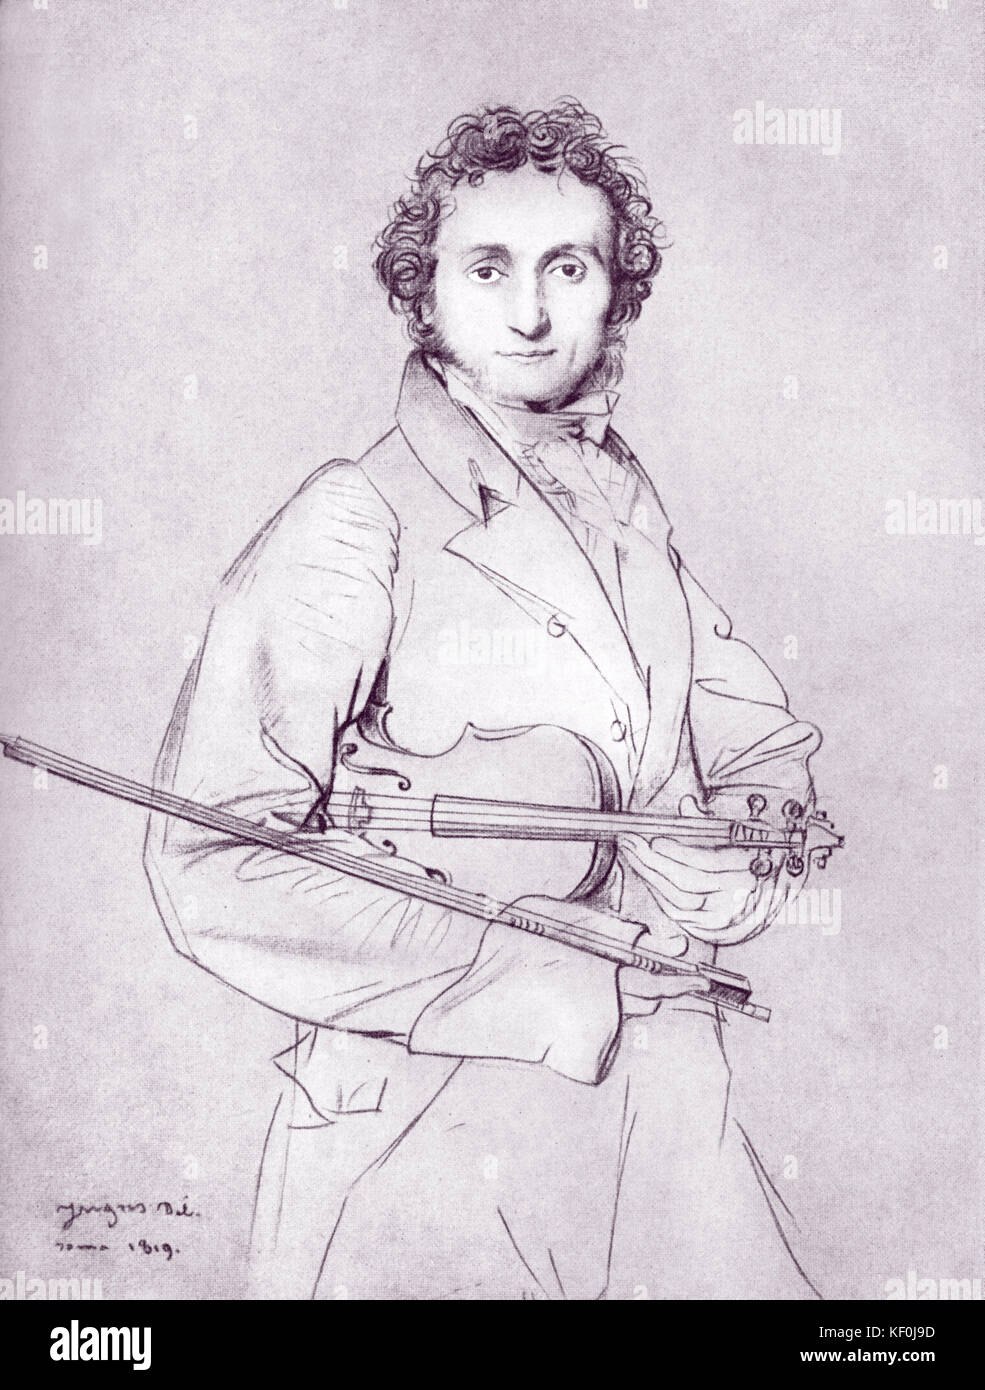 Niccolo paganini with his violin by ingres 1819 pencil drawing italian violinist and composer 1782 1840